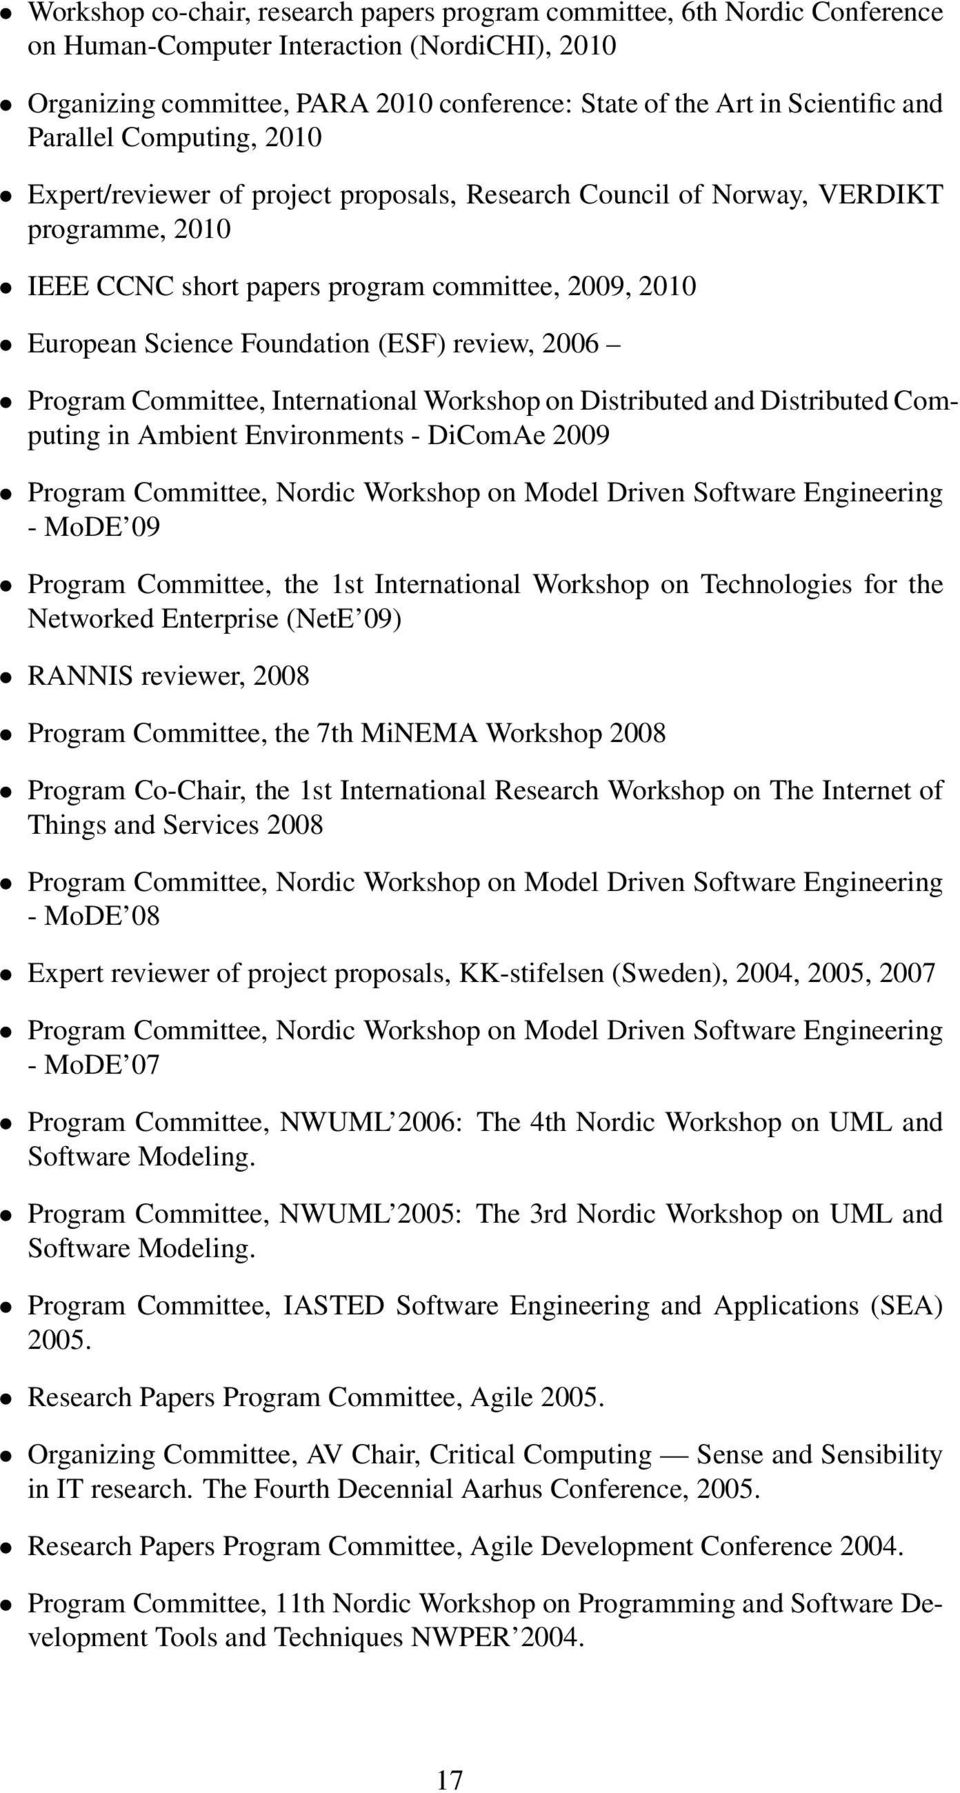 (ESF) review, 2006 Program Committee, International Workshop on Distributed and Distributed Computing in Ambient Environments - DiComAe 2009 Program Committee, Nordic Workshop on Model Driven